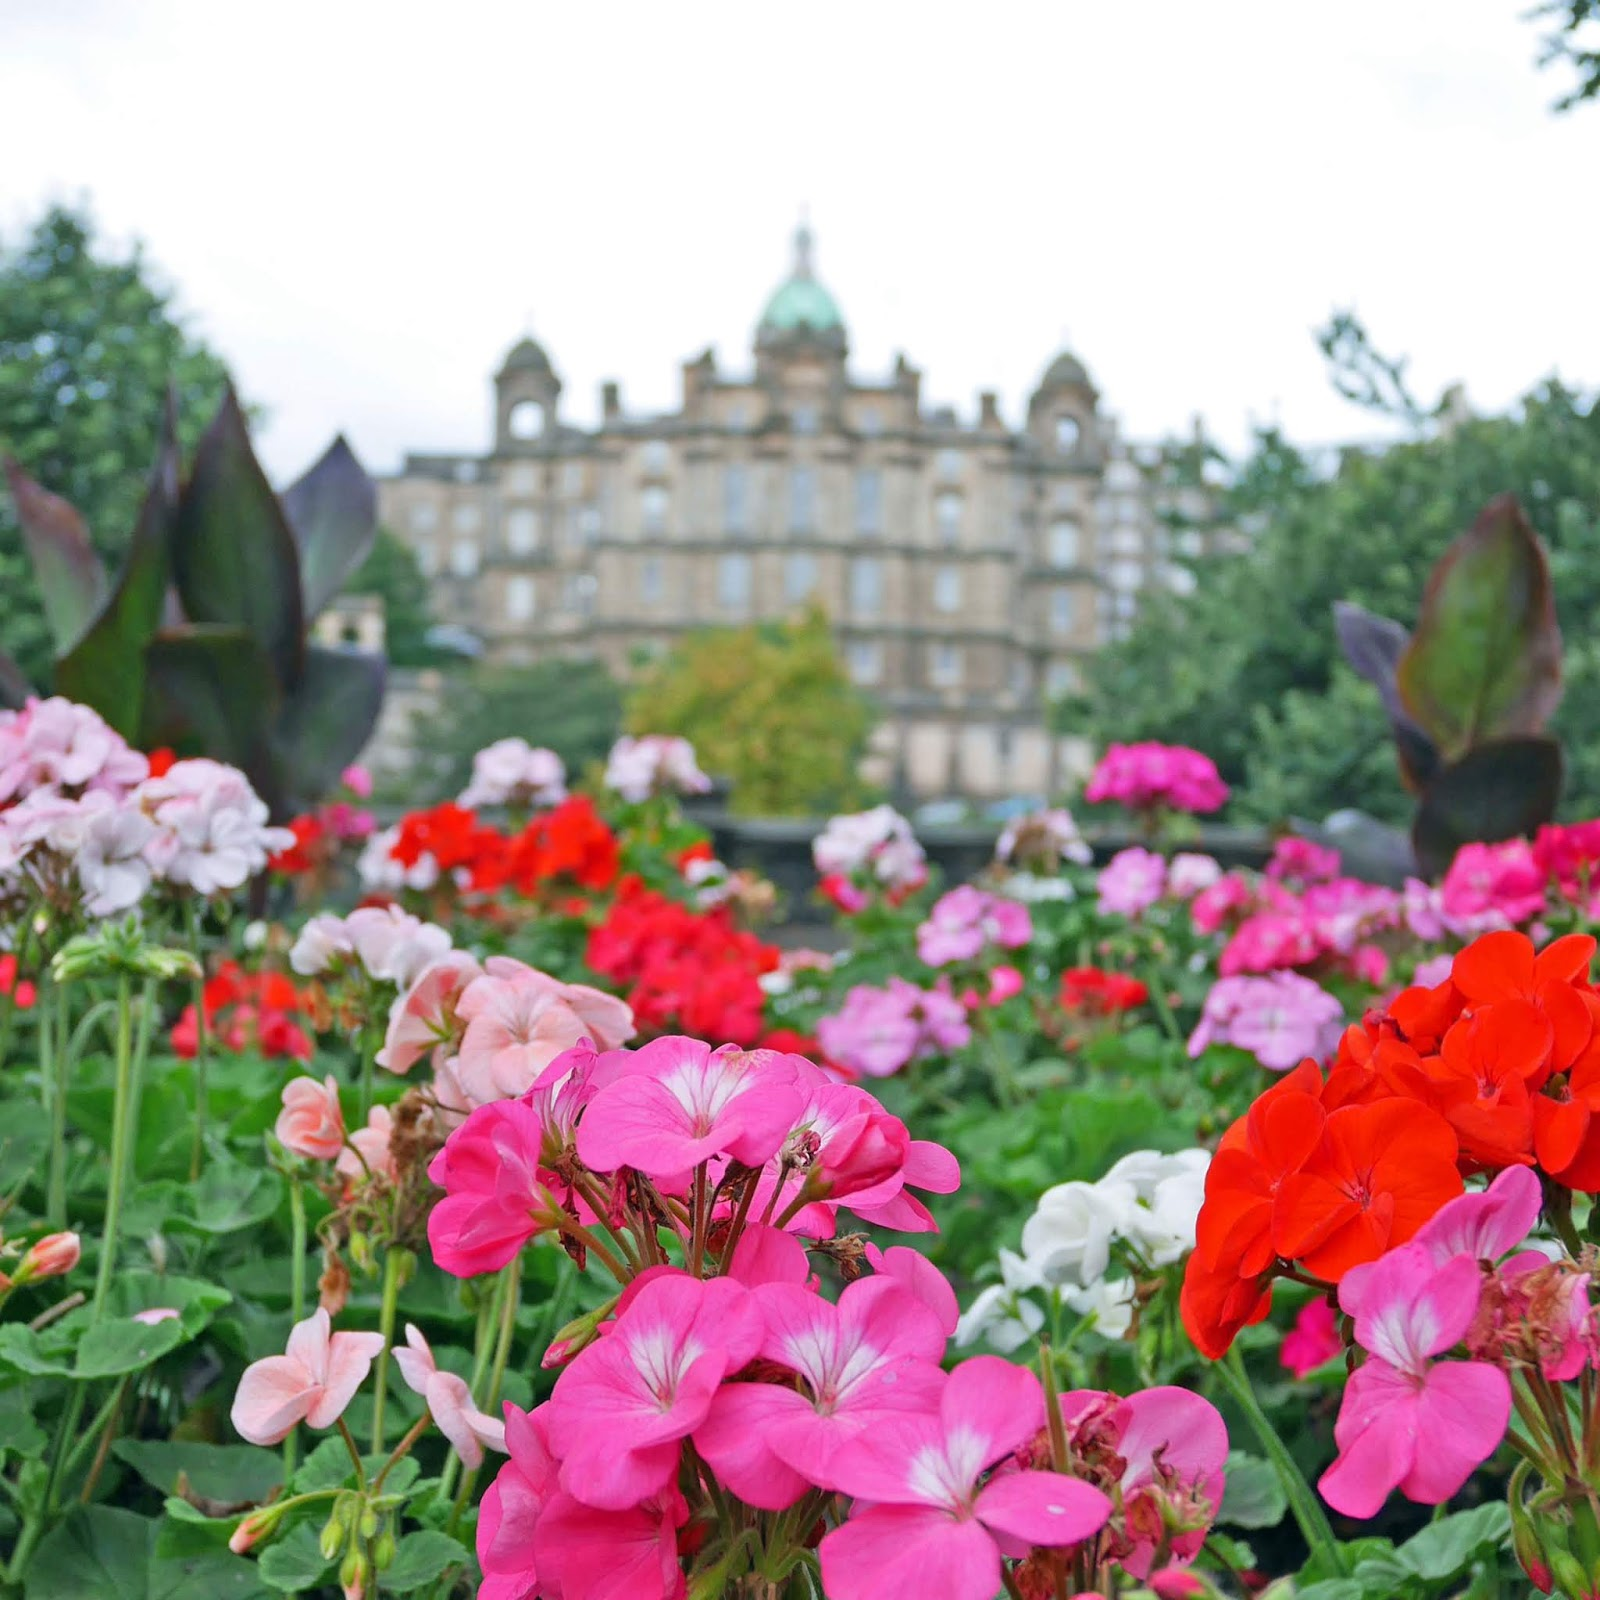 Flowers in Princes Street Gardens, Edinburgh